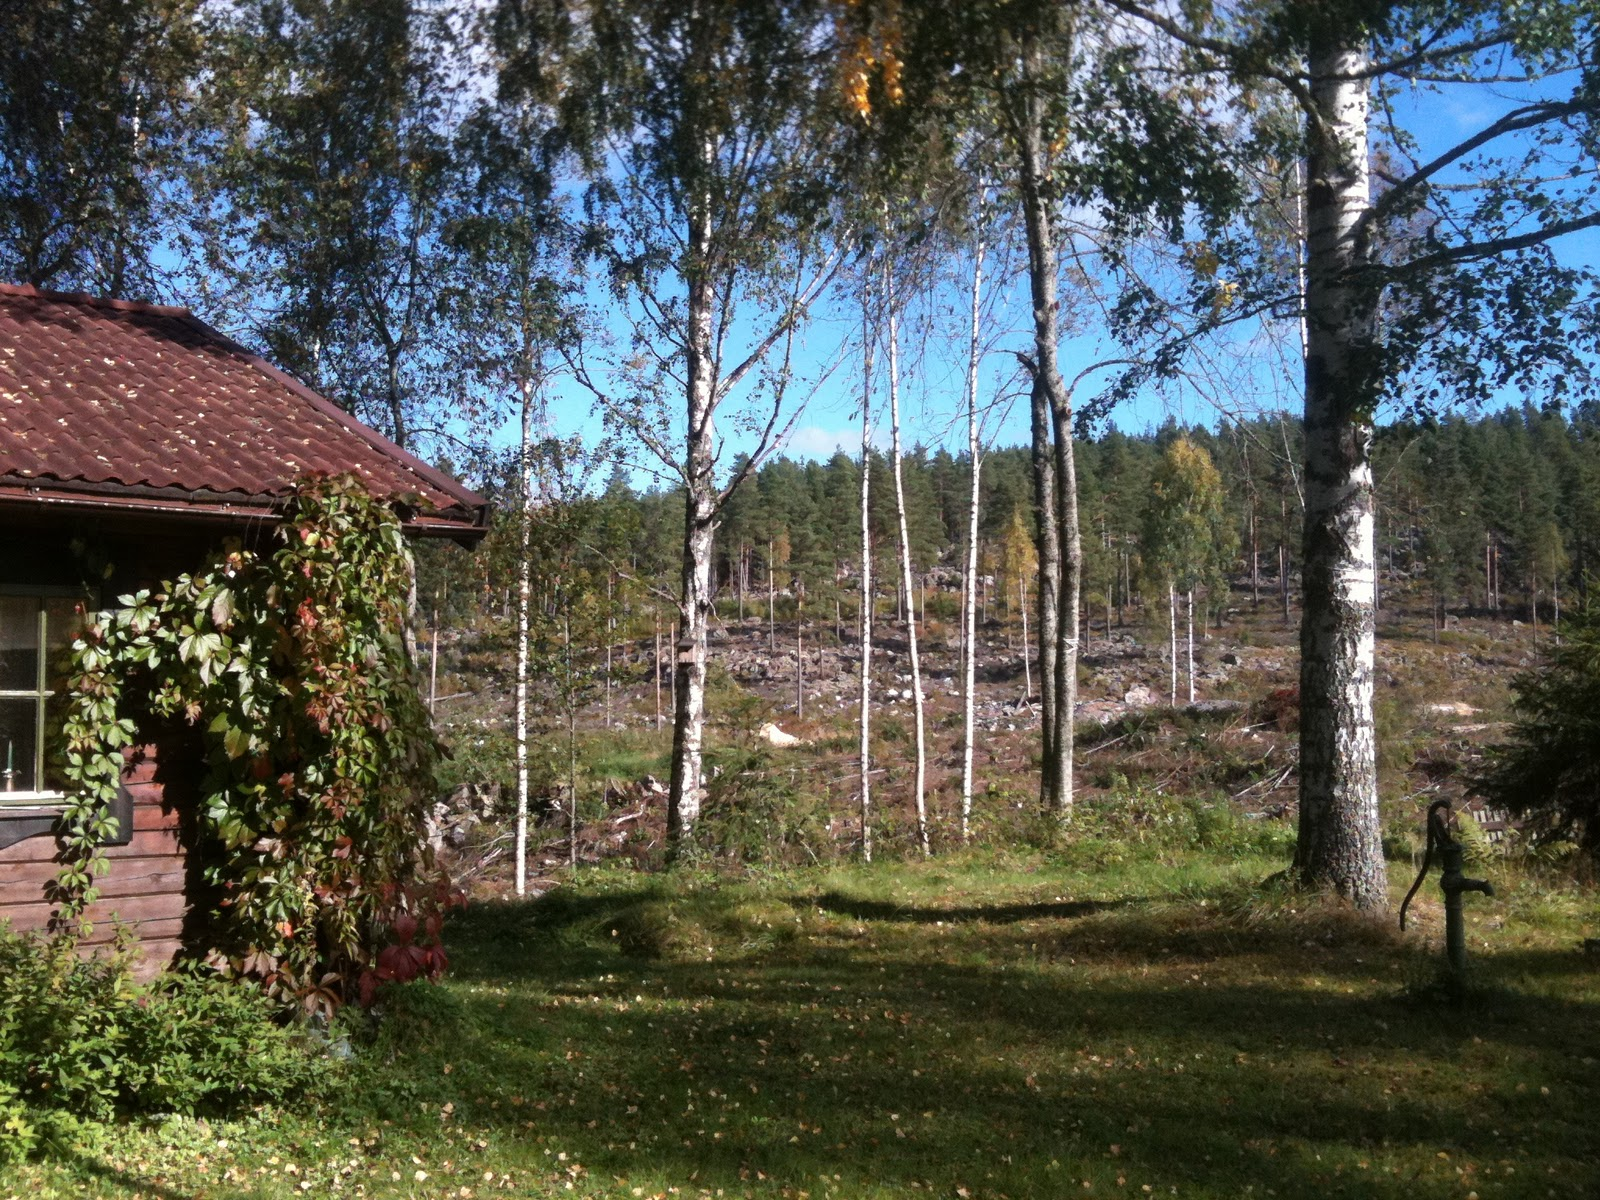 Fröken ekoreko: september 2011